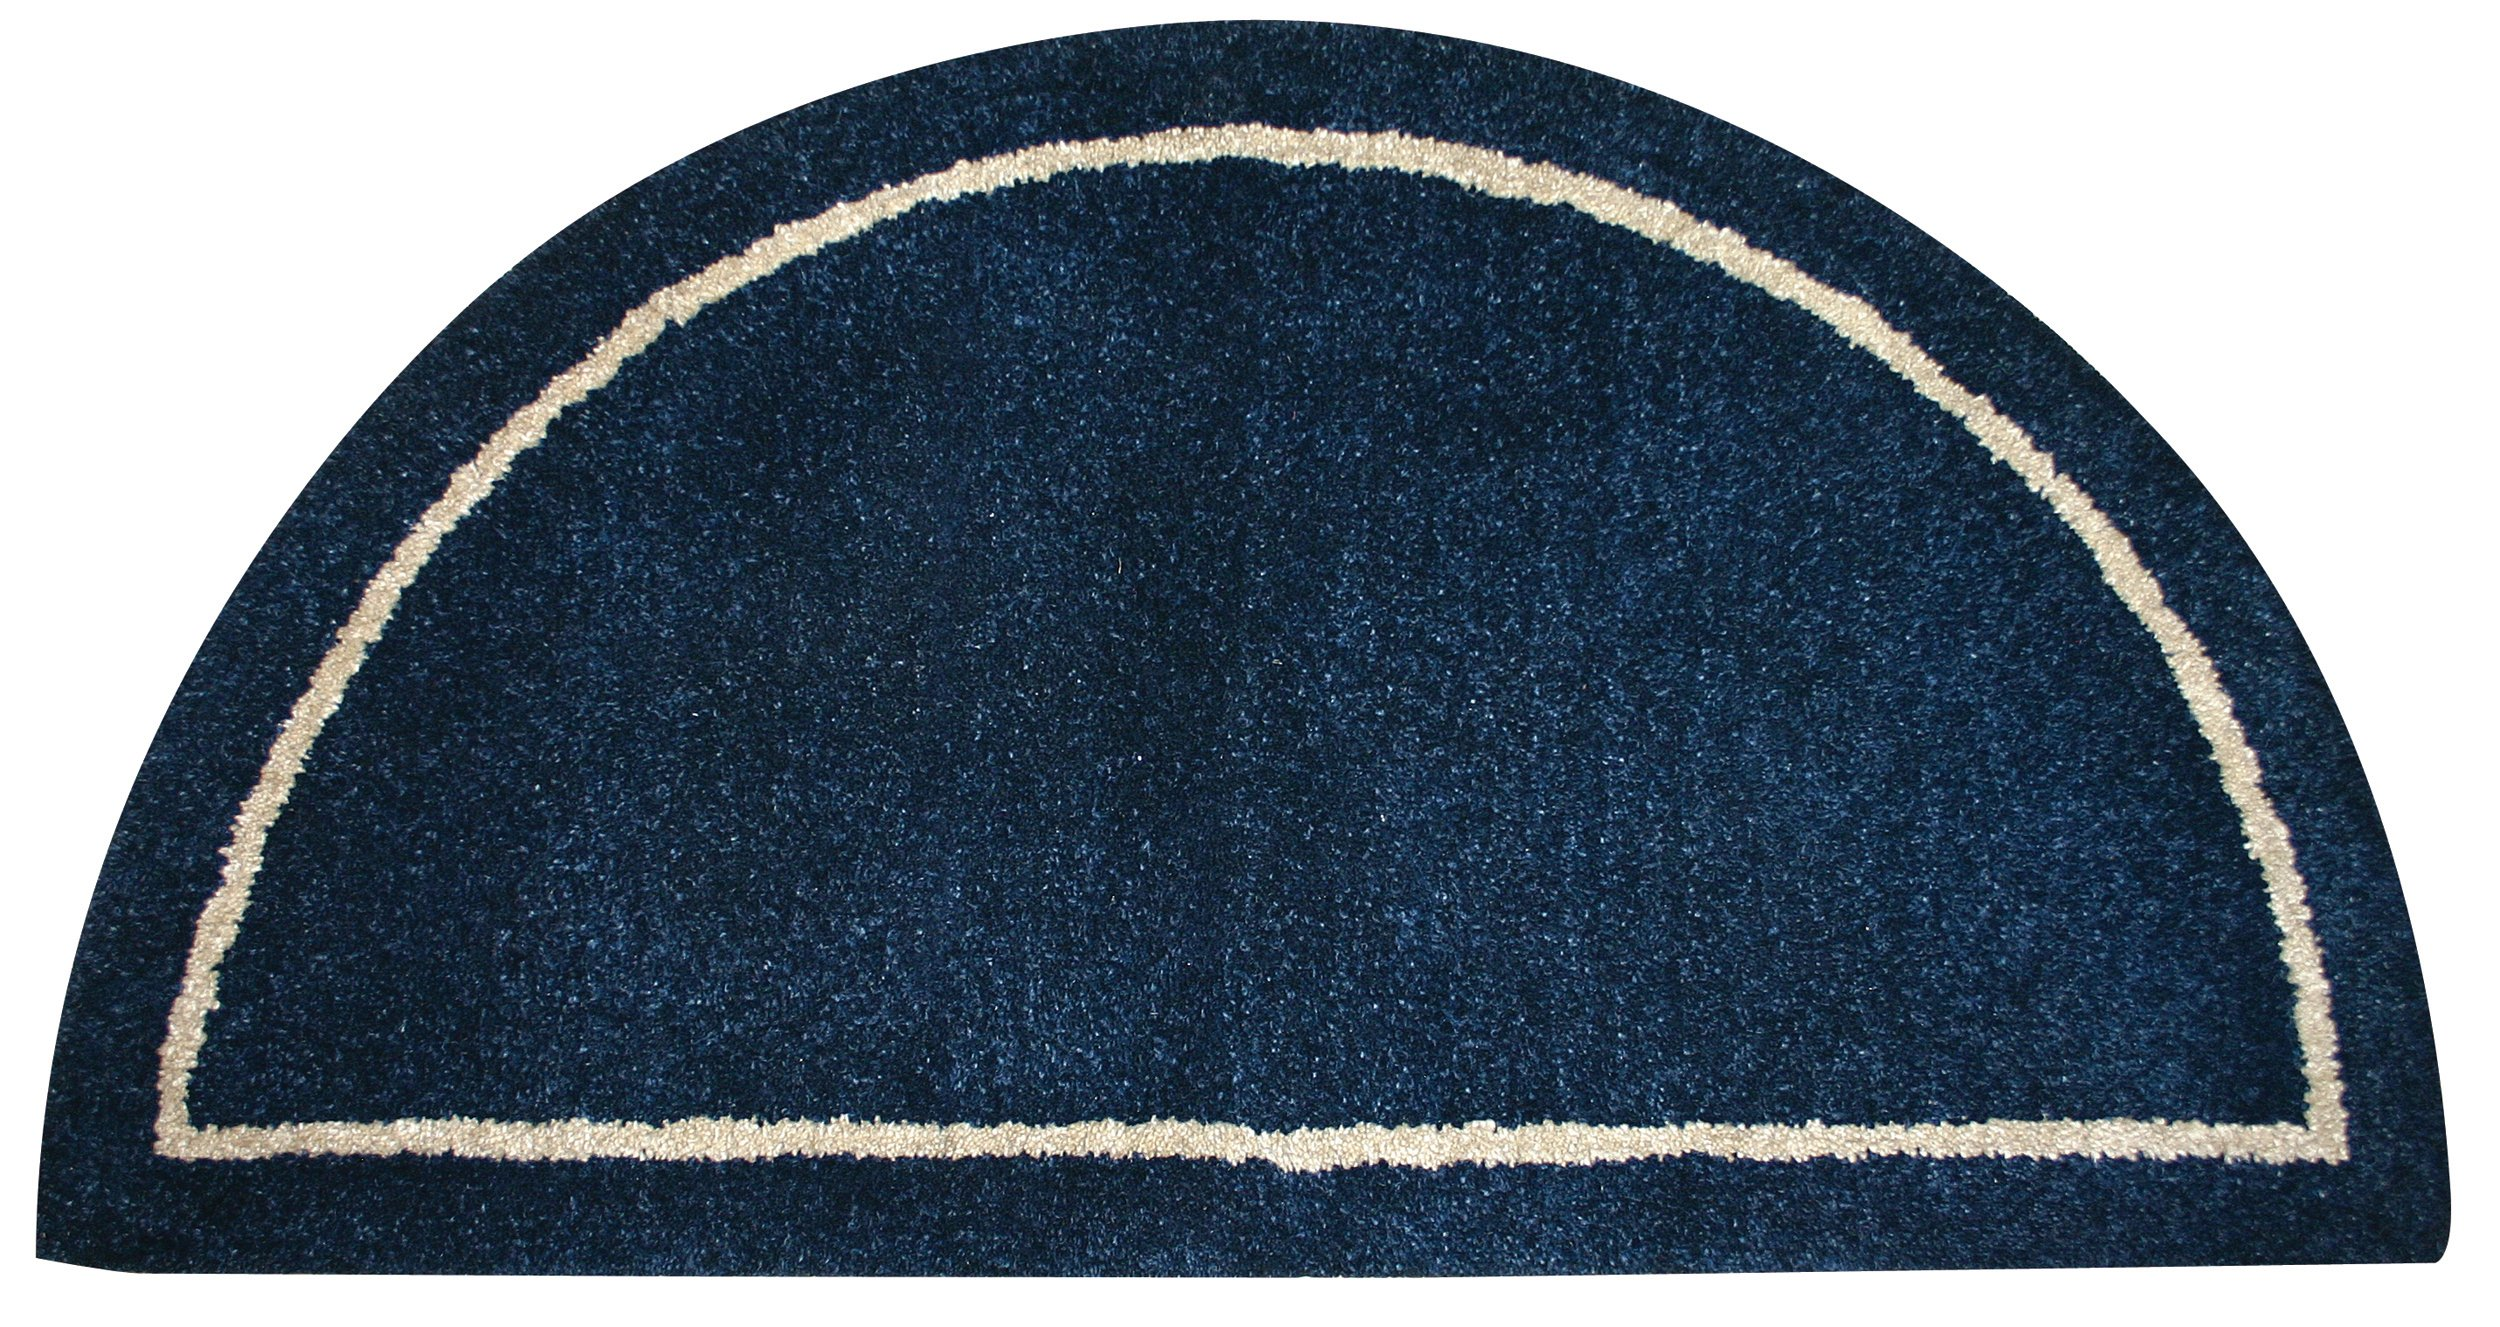 Fireplace Wool Rug Hearth Carpet Fire Resistant Mat Half Round ...